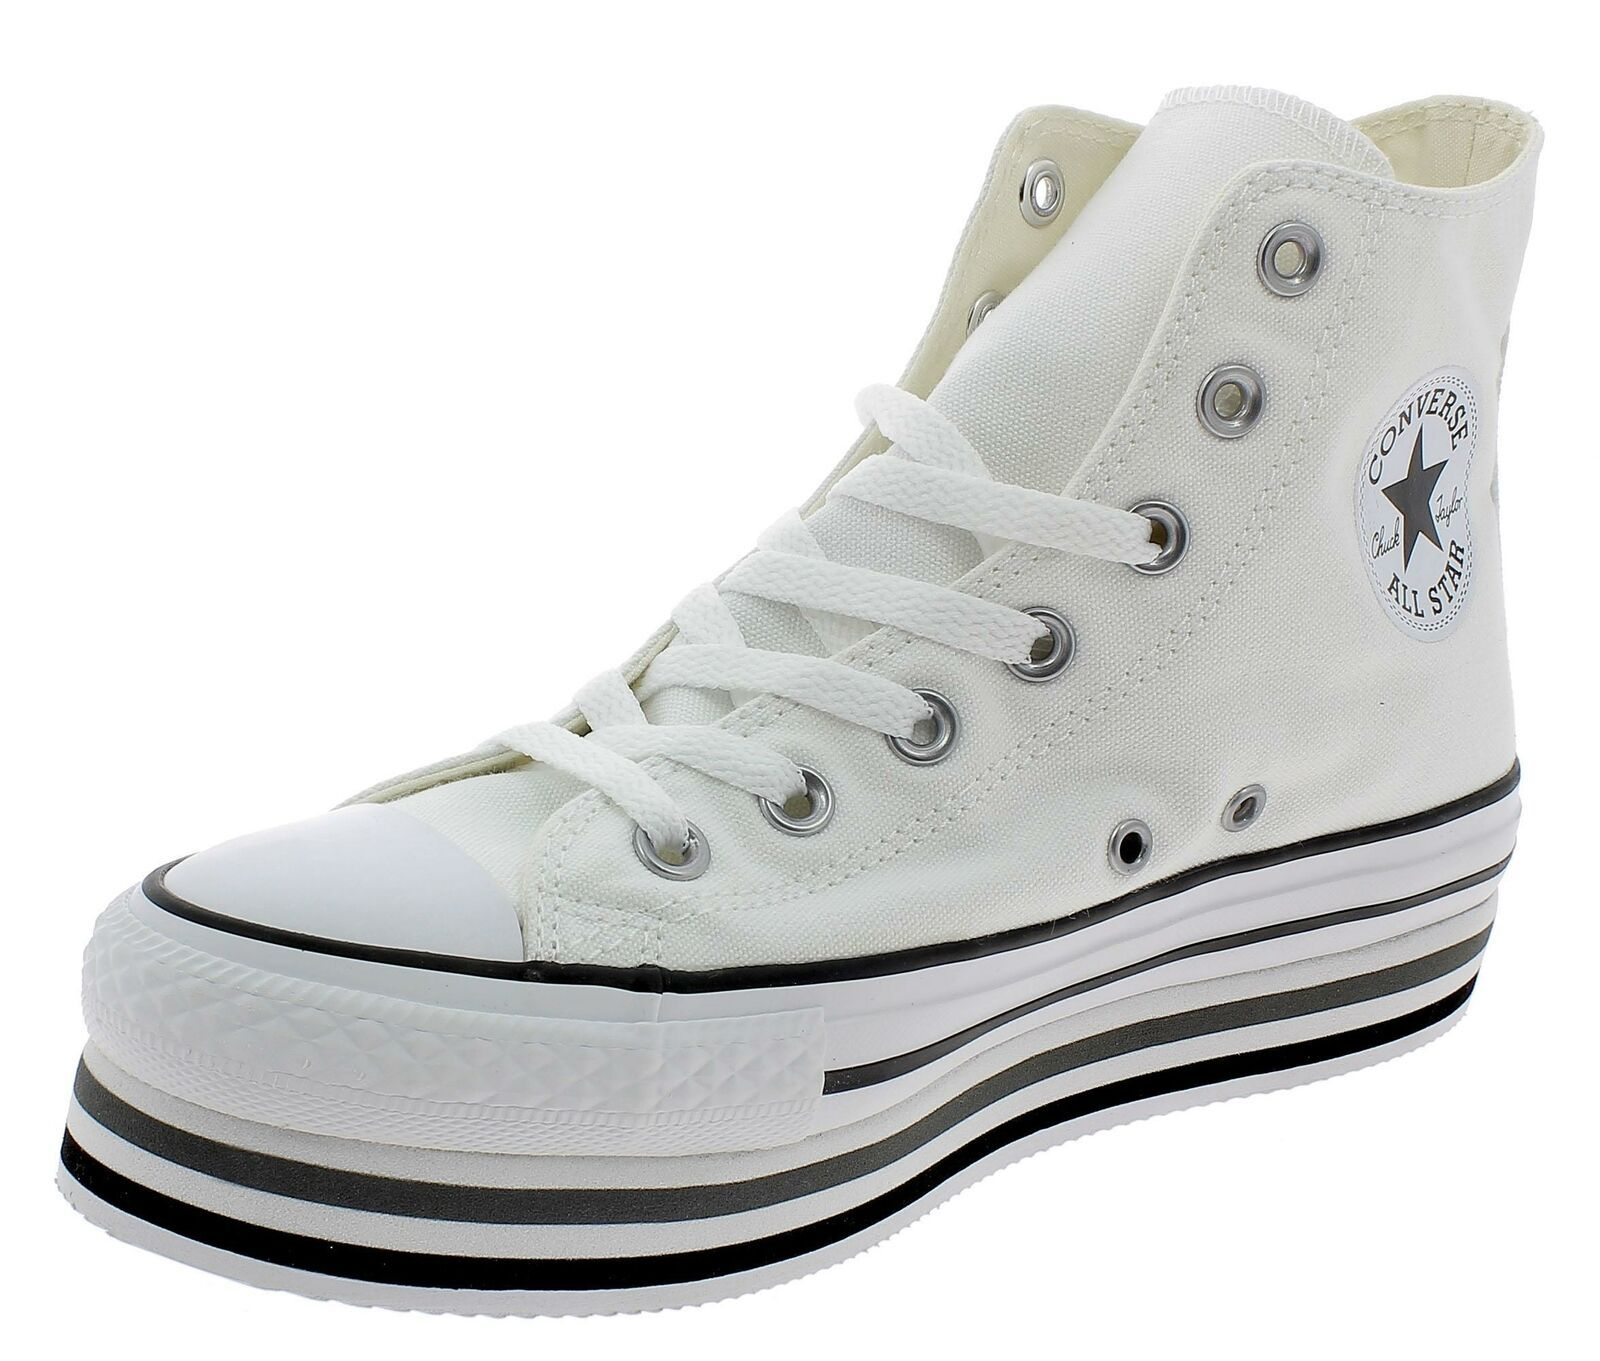 converse chuck taylor pelle all star donna